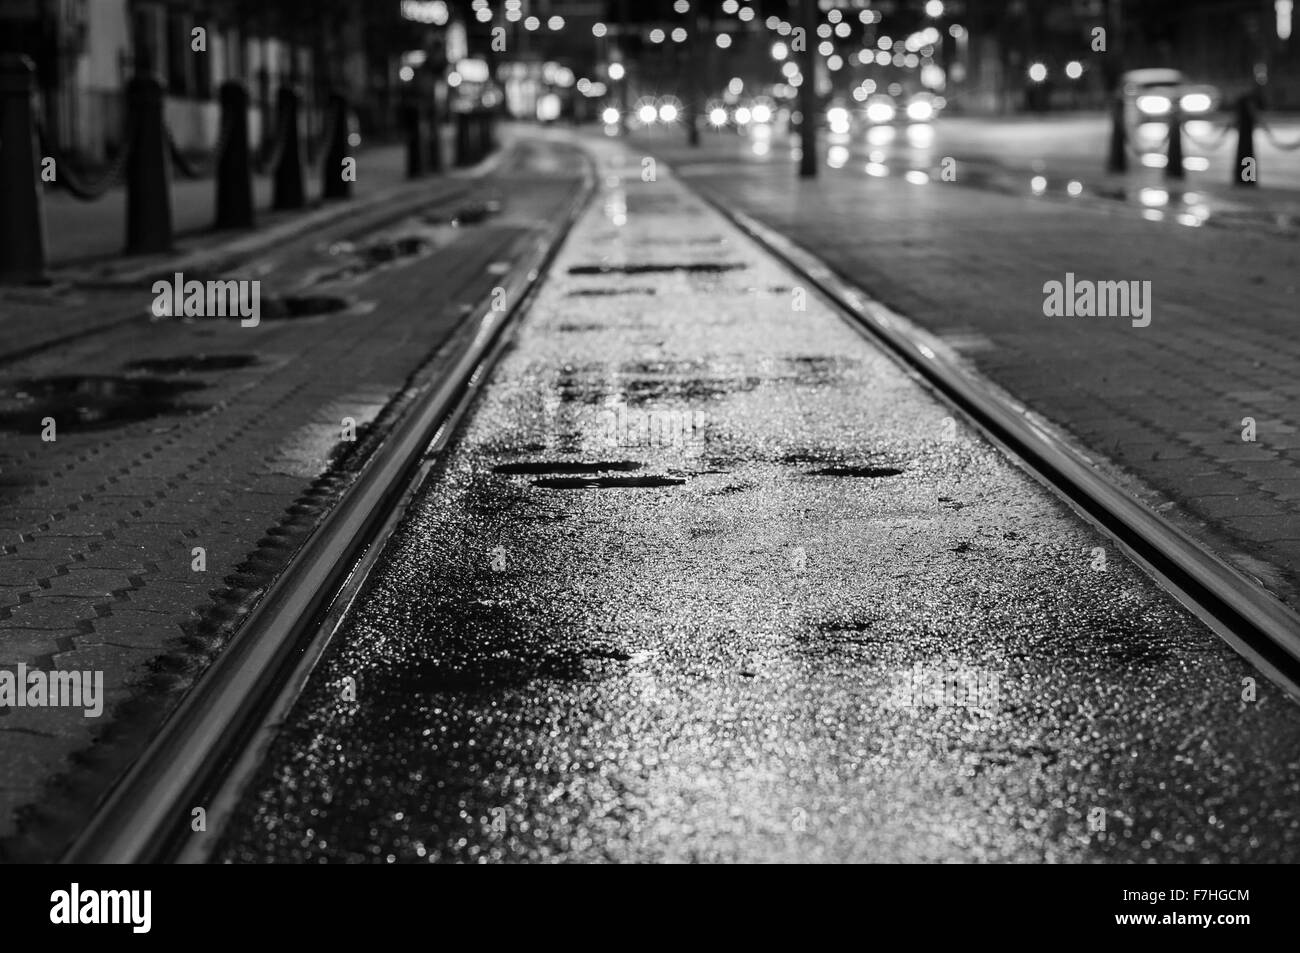 Background image rails - Night View On Wet Tram Rails After Rain Blurred Traffic Lights On Background Black And White Tone